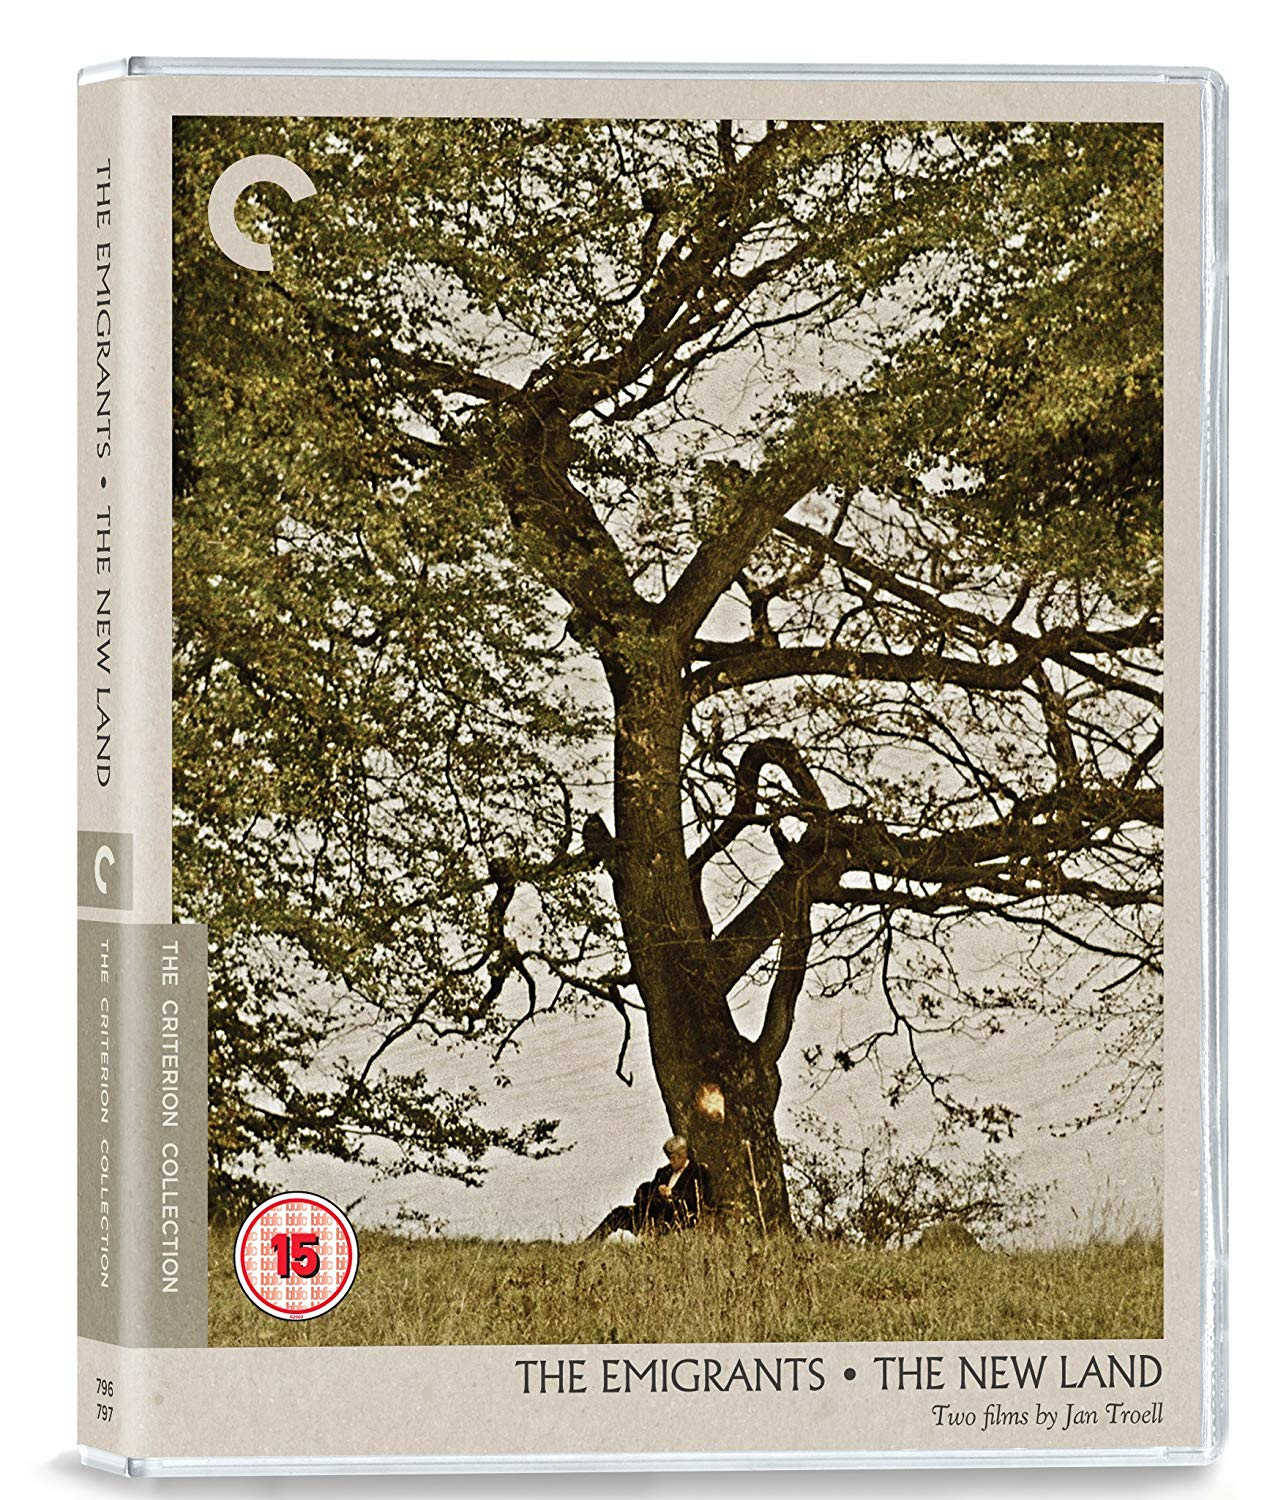 Buy The Emigrants + The New Land (Blu-ray)